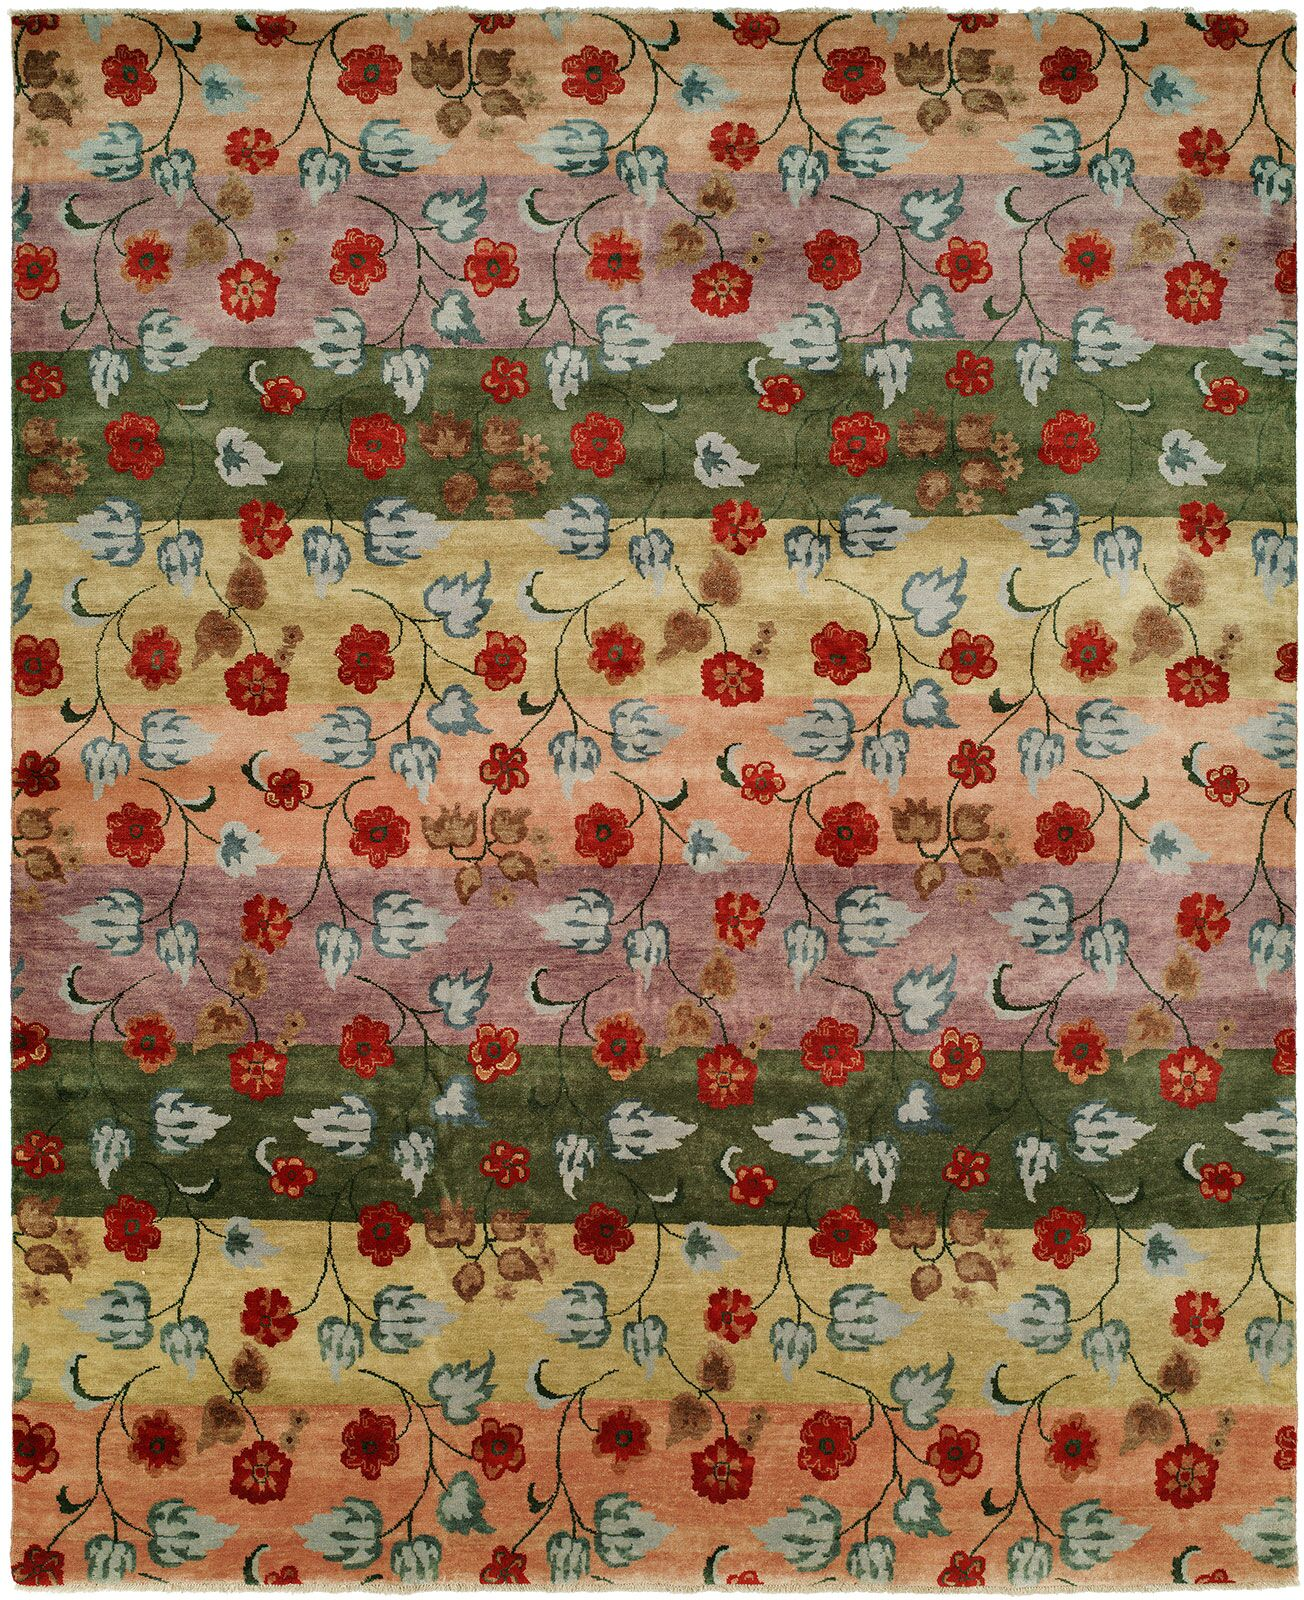 Capri Stripe Hand-Knotted Wool Red/Green Area Rug Rug Size: Runner 2'6